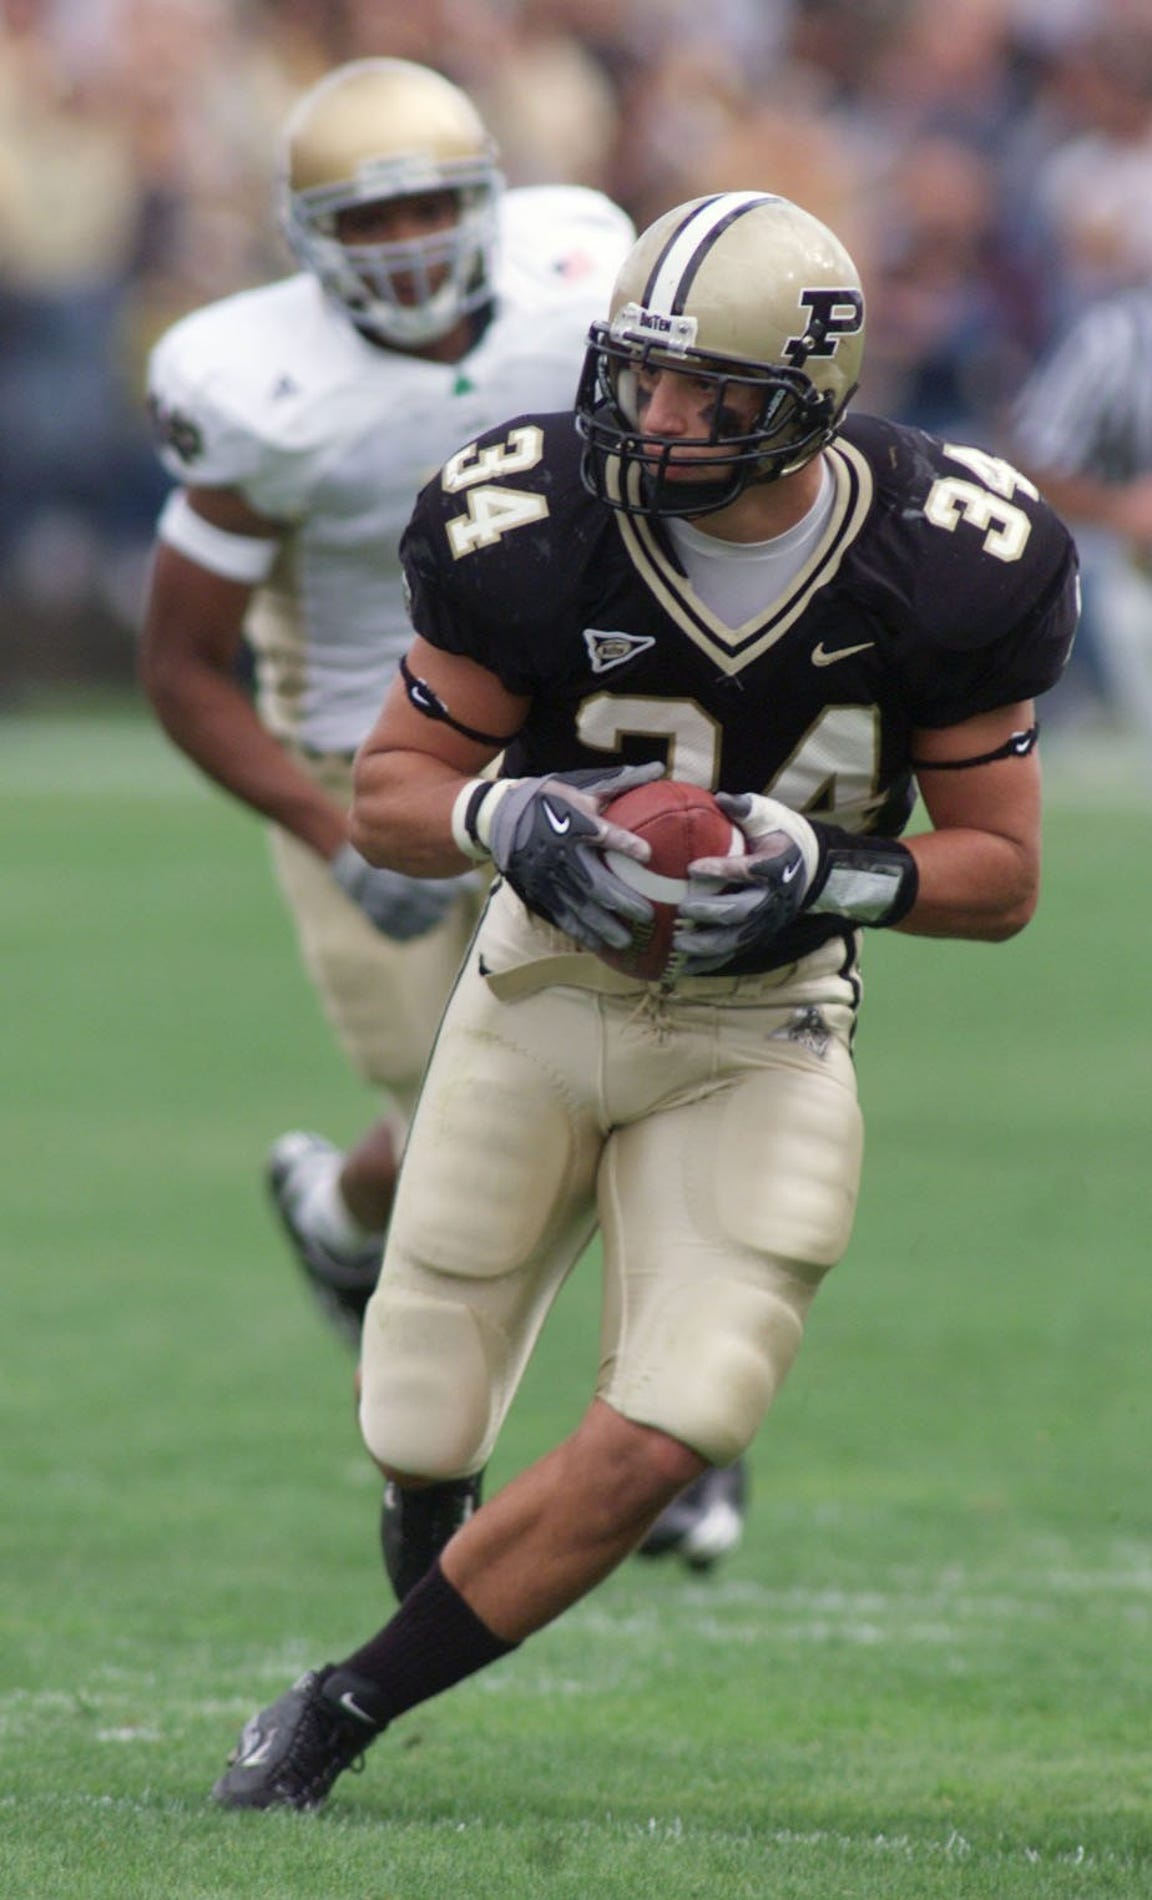 Purdue linebacker Niko Koutouvides returns an interception against Notre Dame during a 23-10 vjctory in 2003.